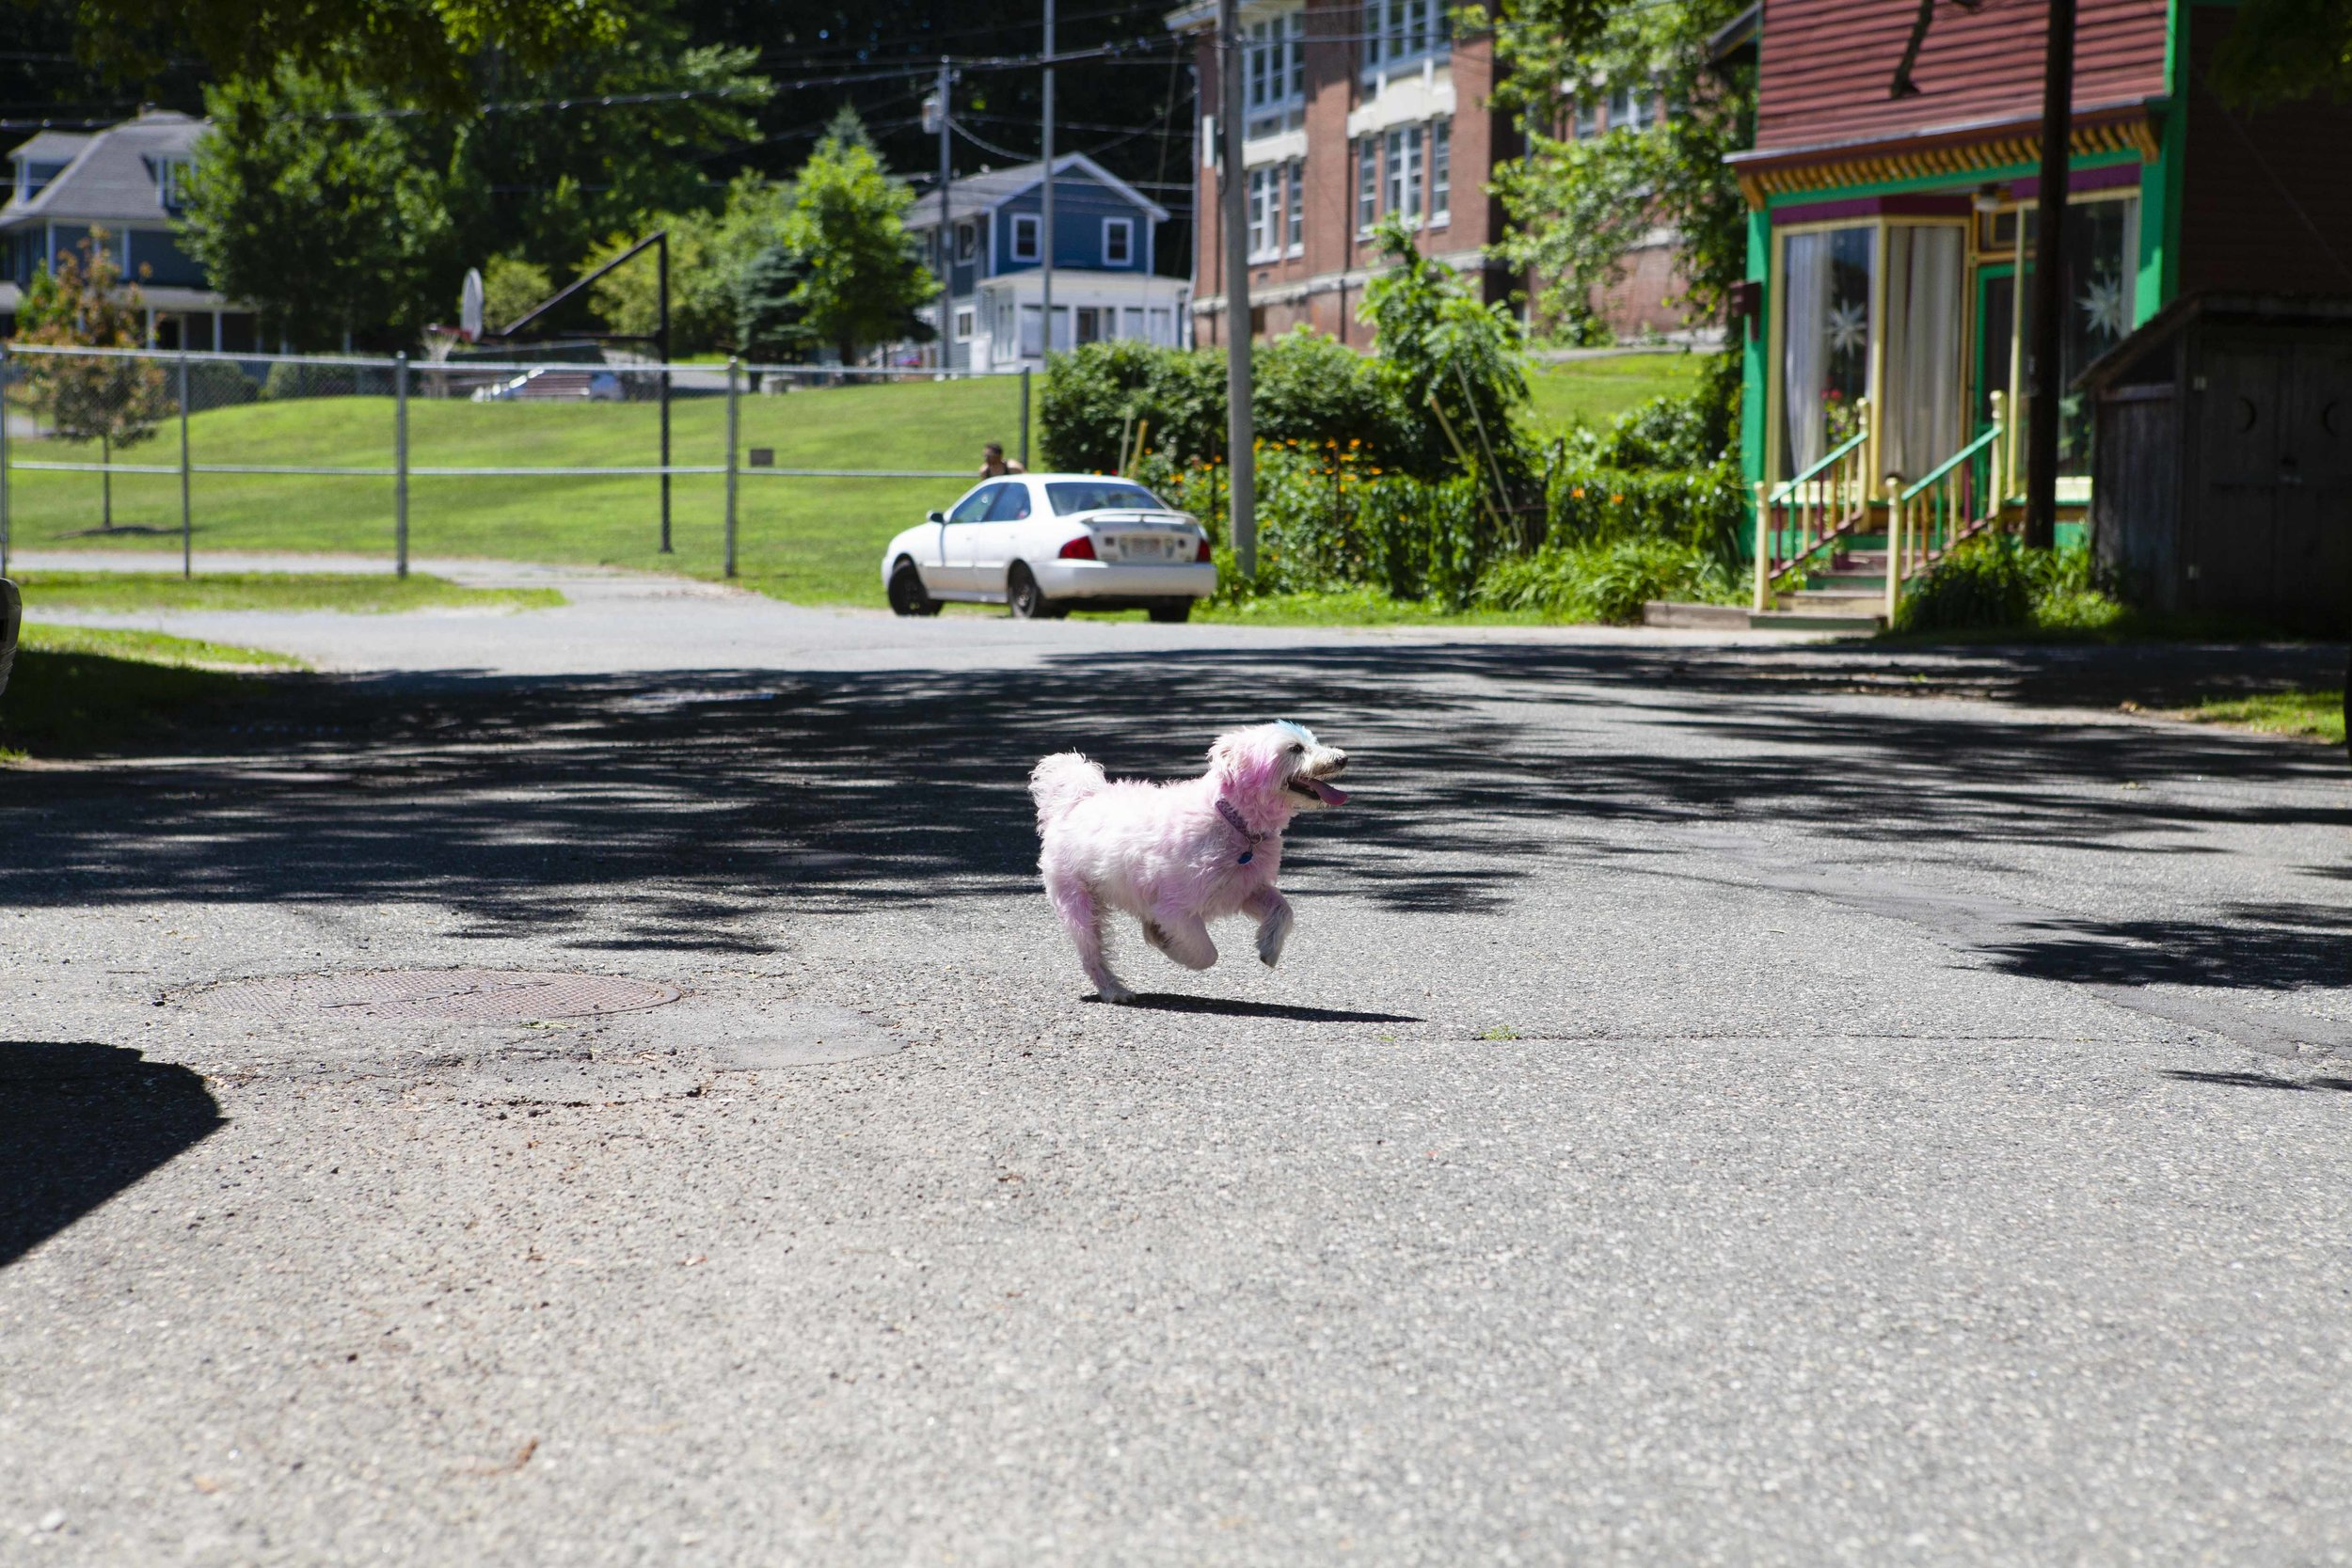 Welcome back Yukiko! Yes, the dog is pink. (and blue)